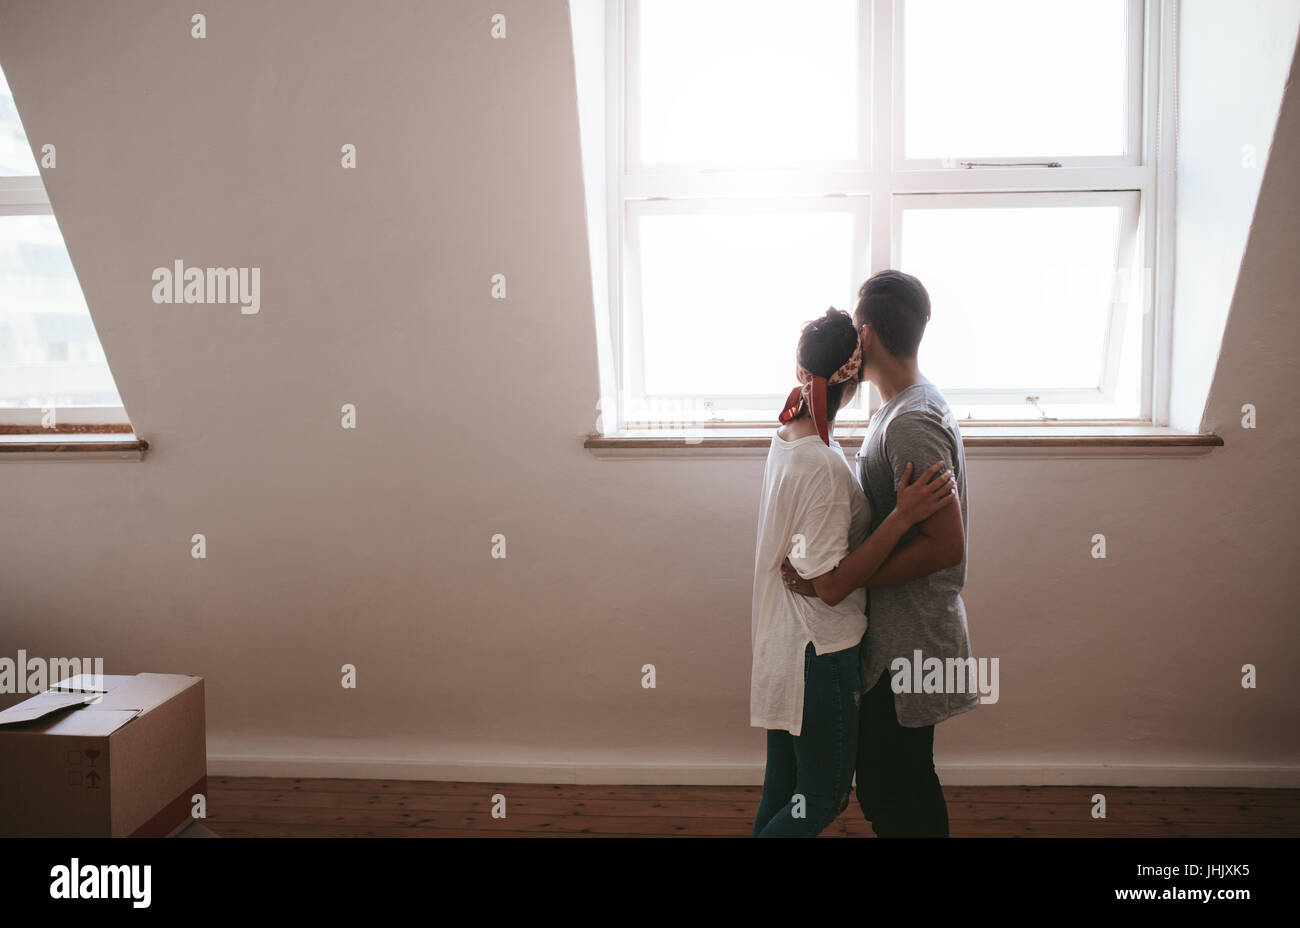 Loving young couple moving in a new apartment. Man and woman standing together with boxes on floor. - Stock Image